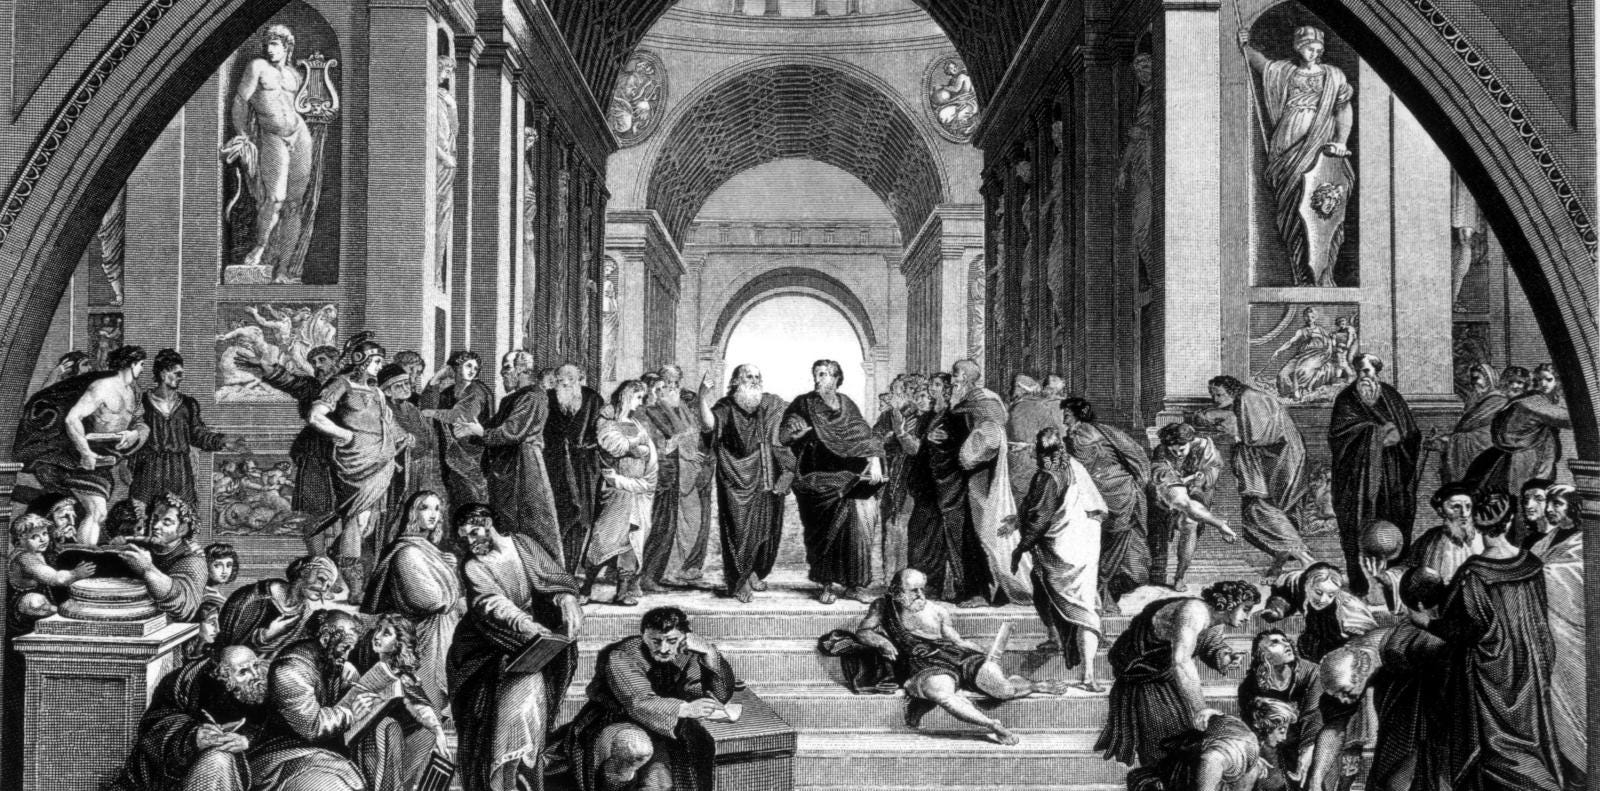 Socrates (center, left), at the school of Athens, 400 BC, Engraving after painting by Raphael